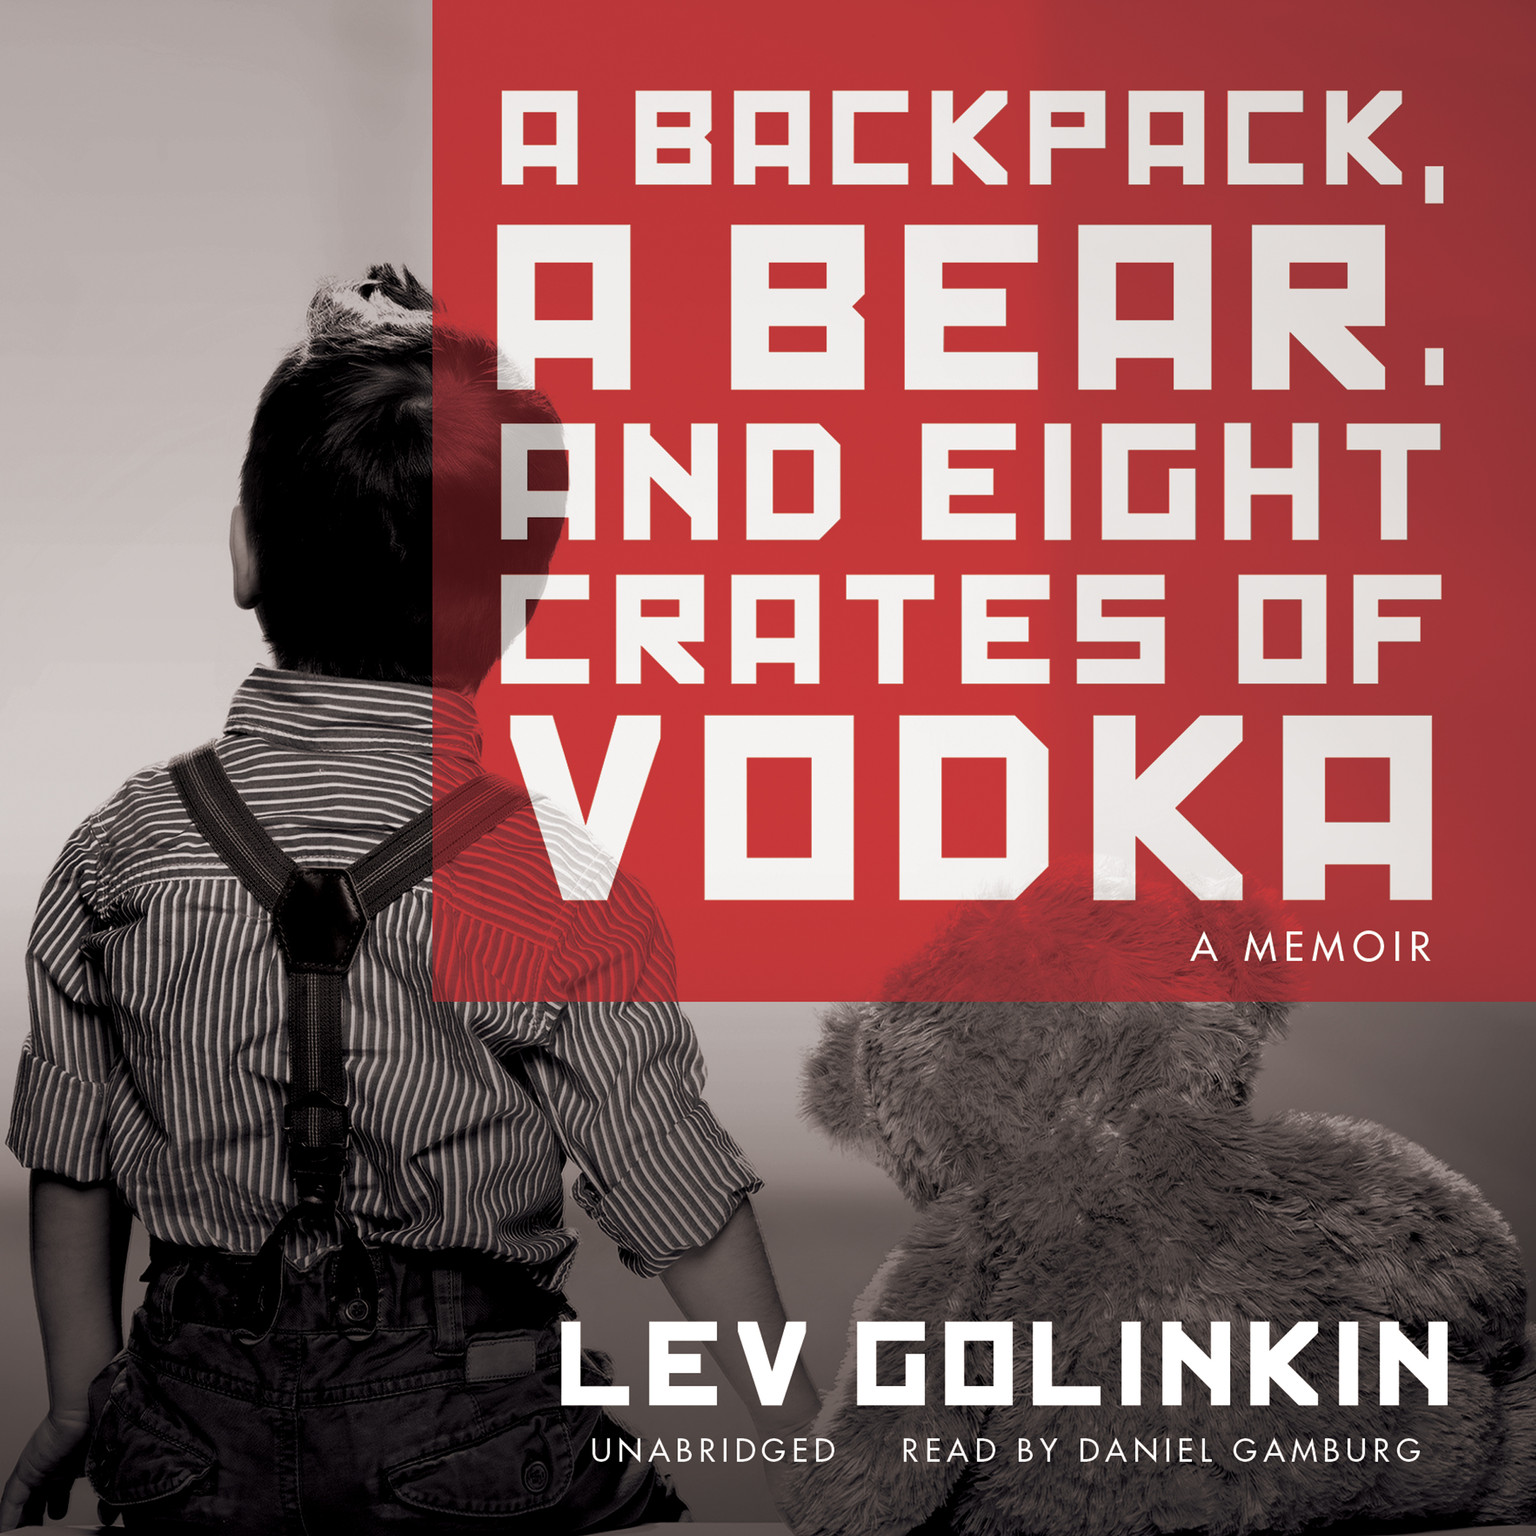 Printable A Backpack, a Bear, and Eight Crates of Vodka: A Memoir Audiobook Cover Art